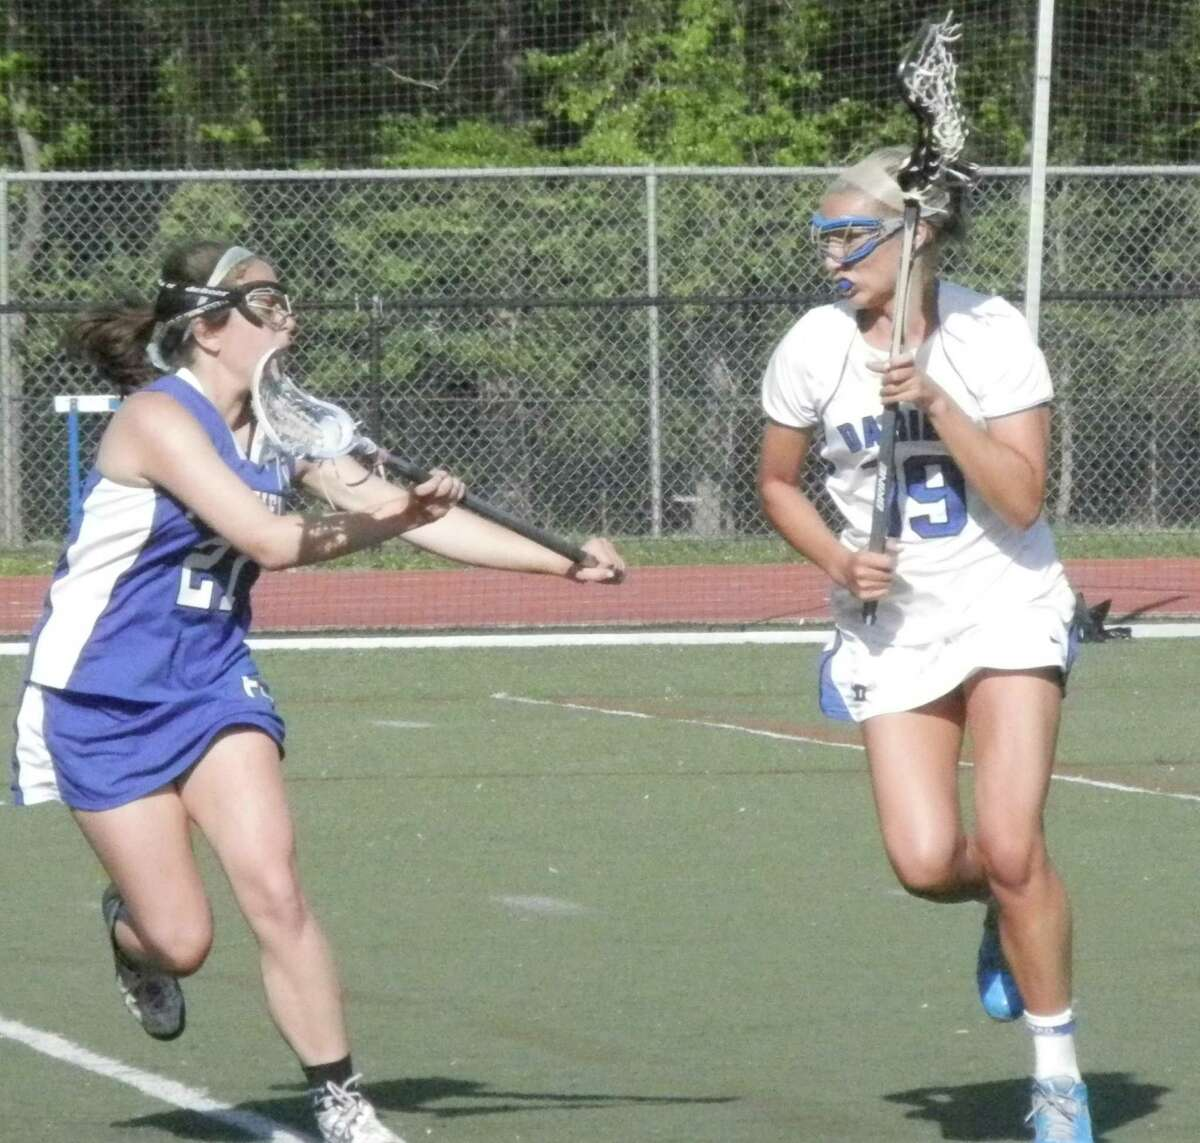 Fairfield Ludlowe senior defender Ellie Palazzo, left, pressures Darien's Jackie Brokaw (19) in the second half Tuesday, May 20 in an FCIAC girls lacrosse game at Darien. The Blue Wave defeated the Falcons 18-5. Brokaw had three assists.